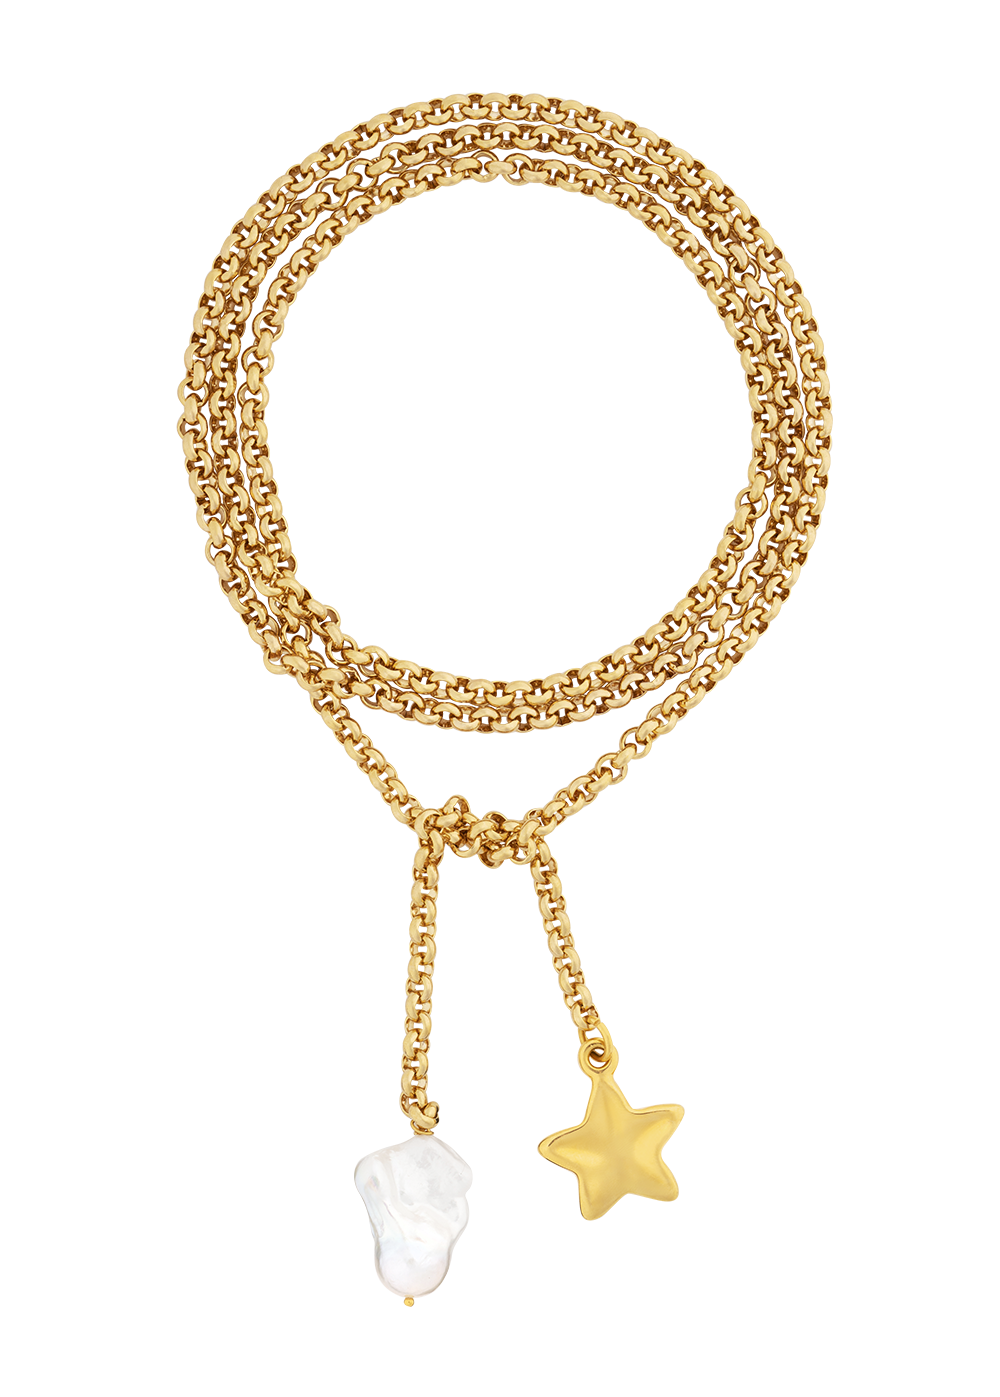 Starland necklace by Timeless Pearly